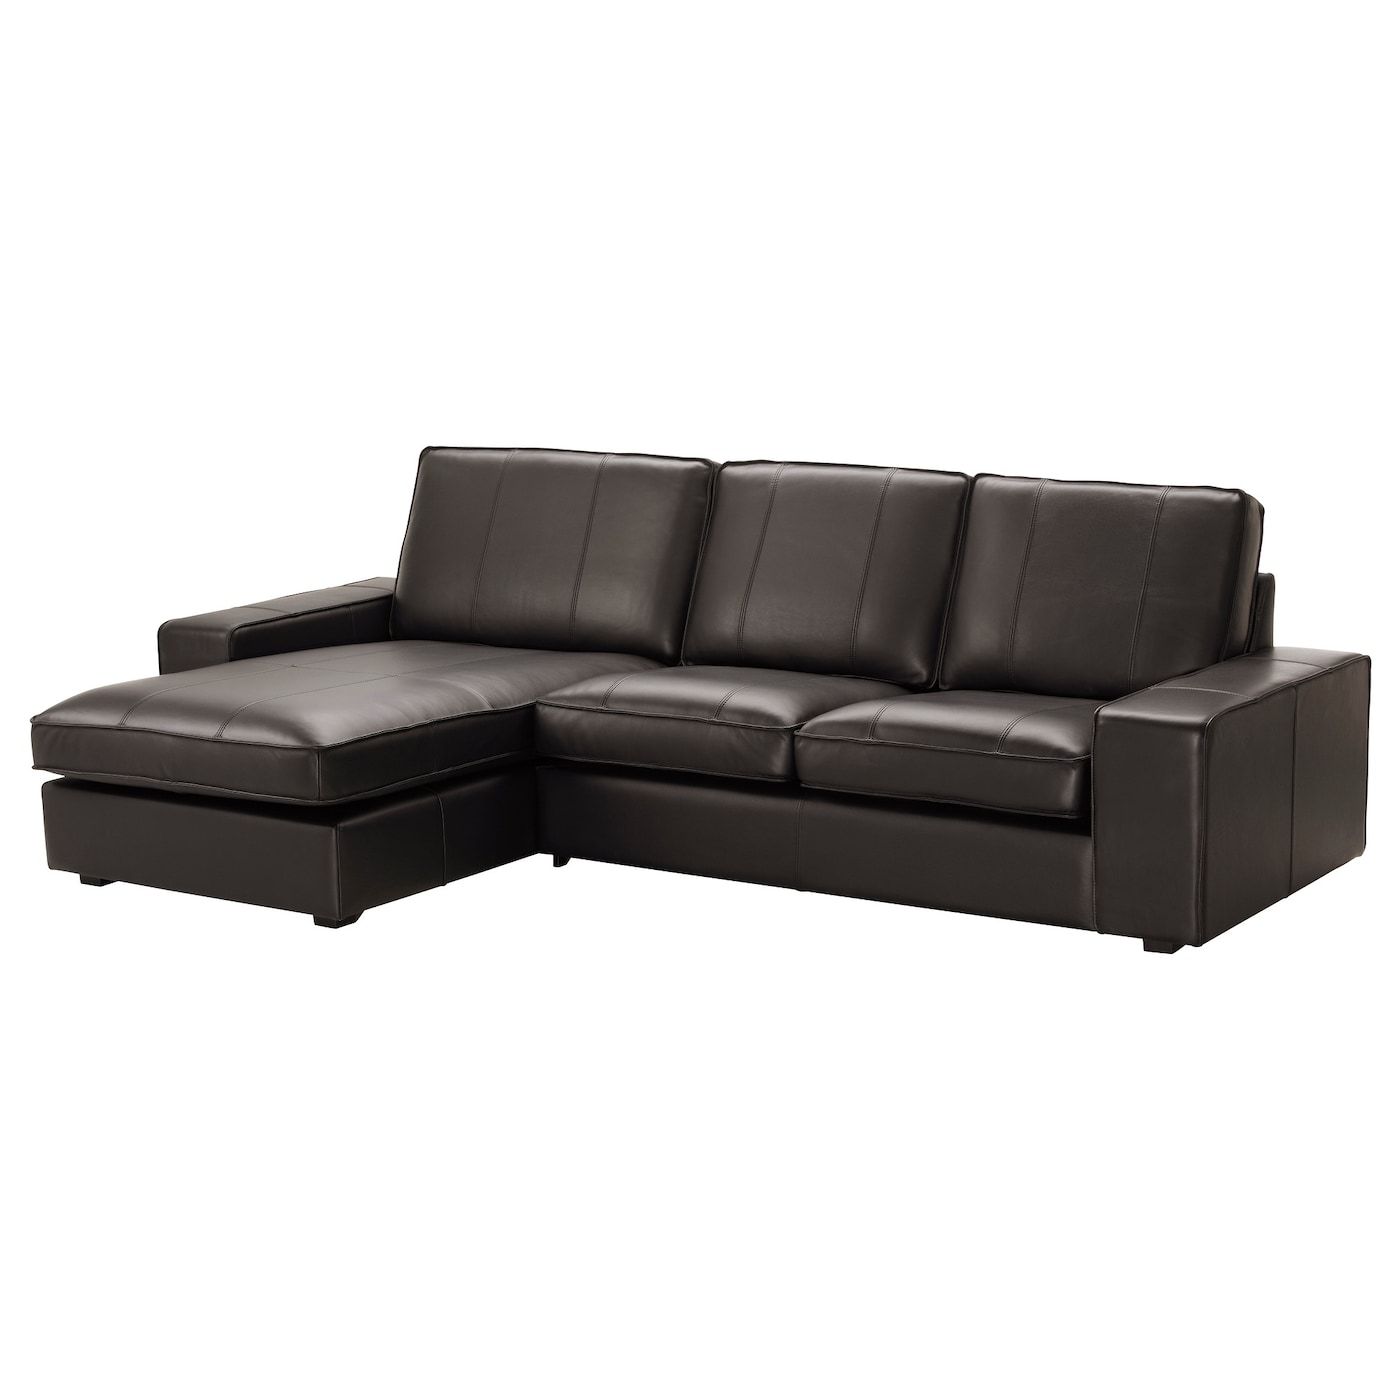 Leather coated fabric sofas ikea for Chaise noire ikea